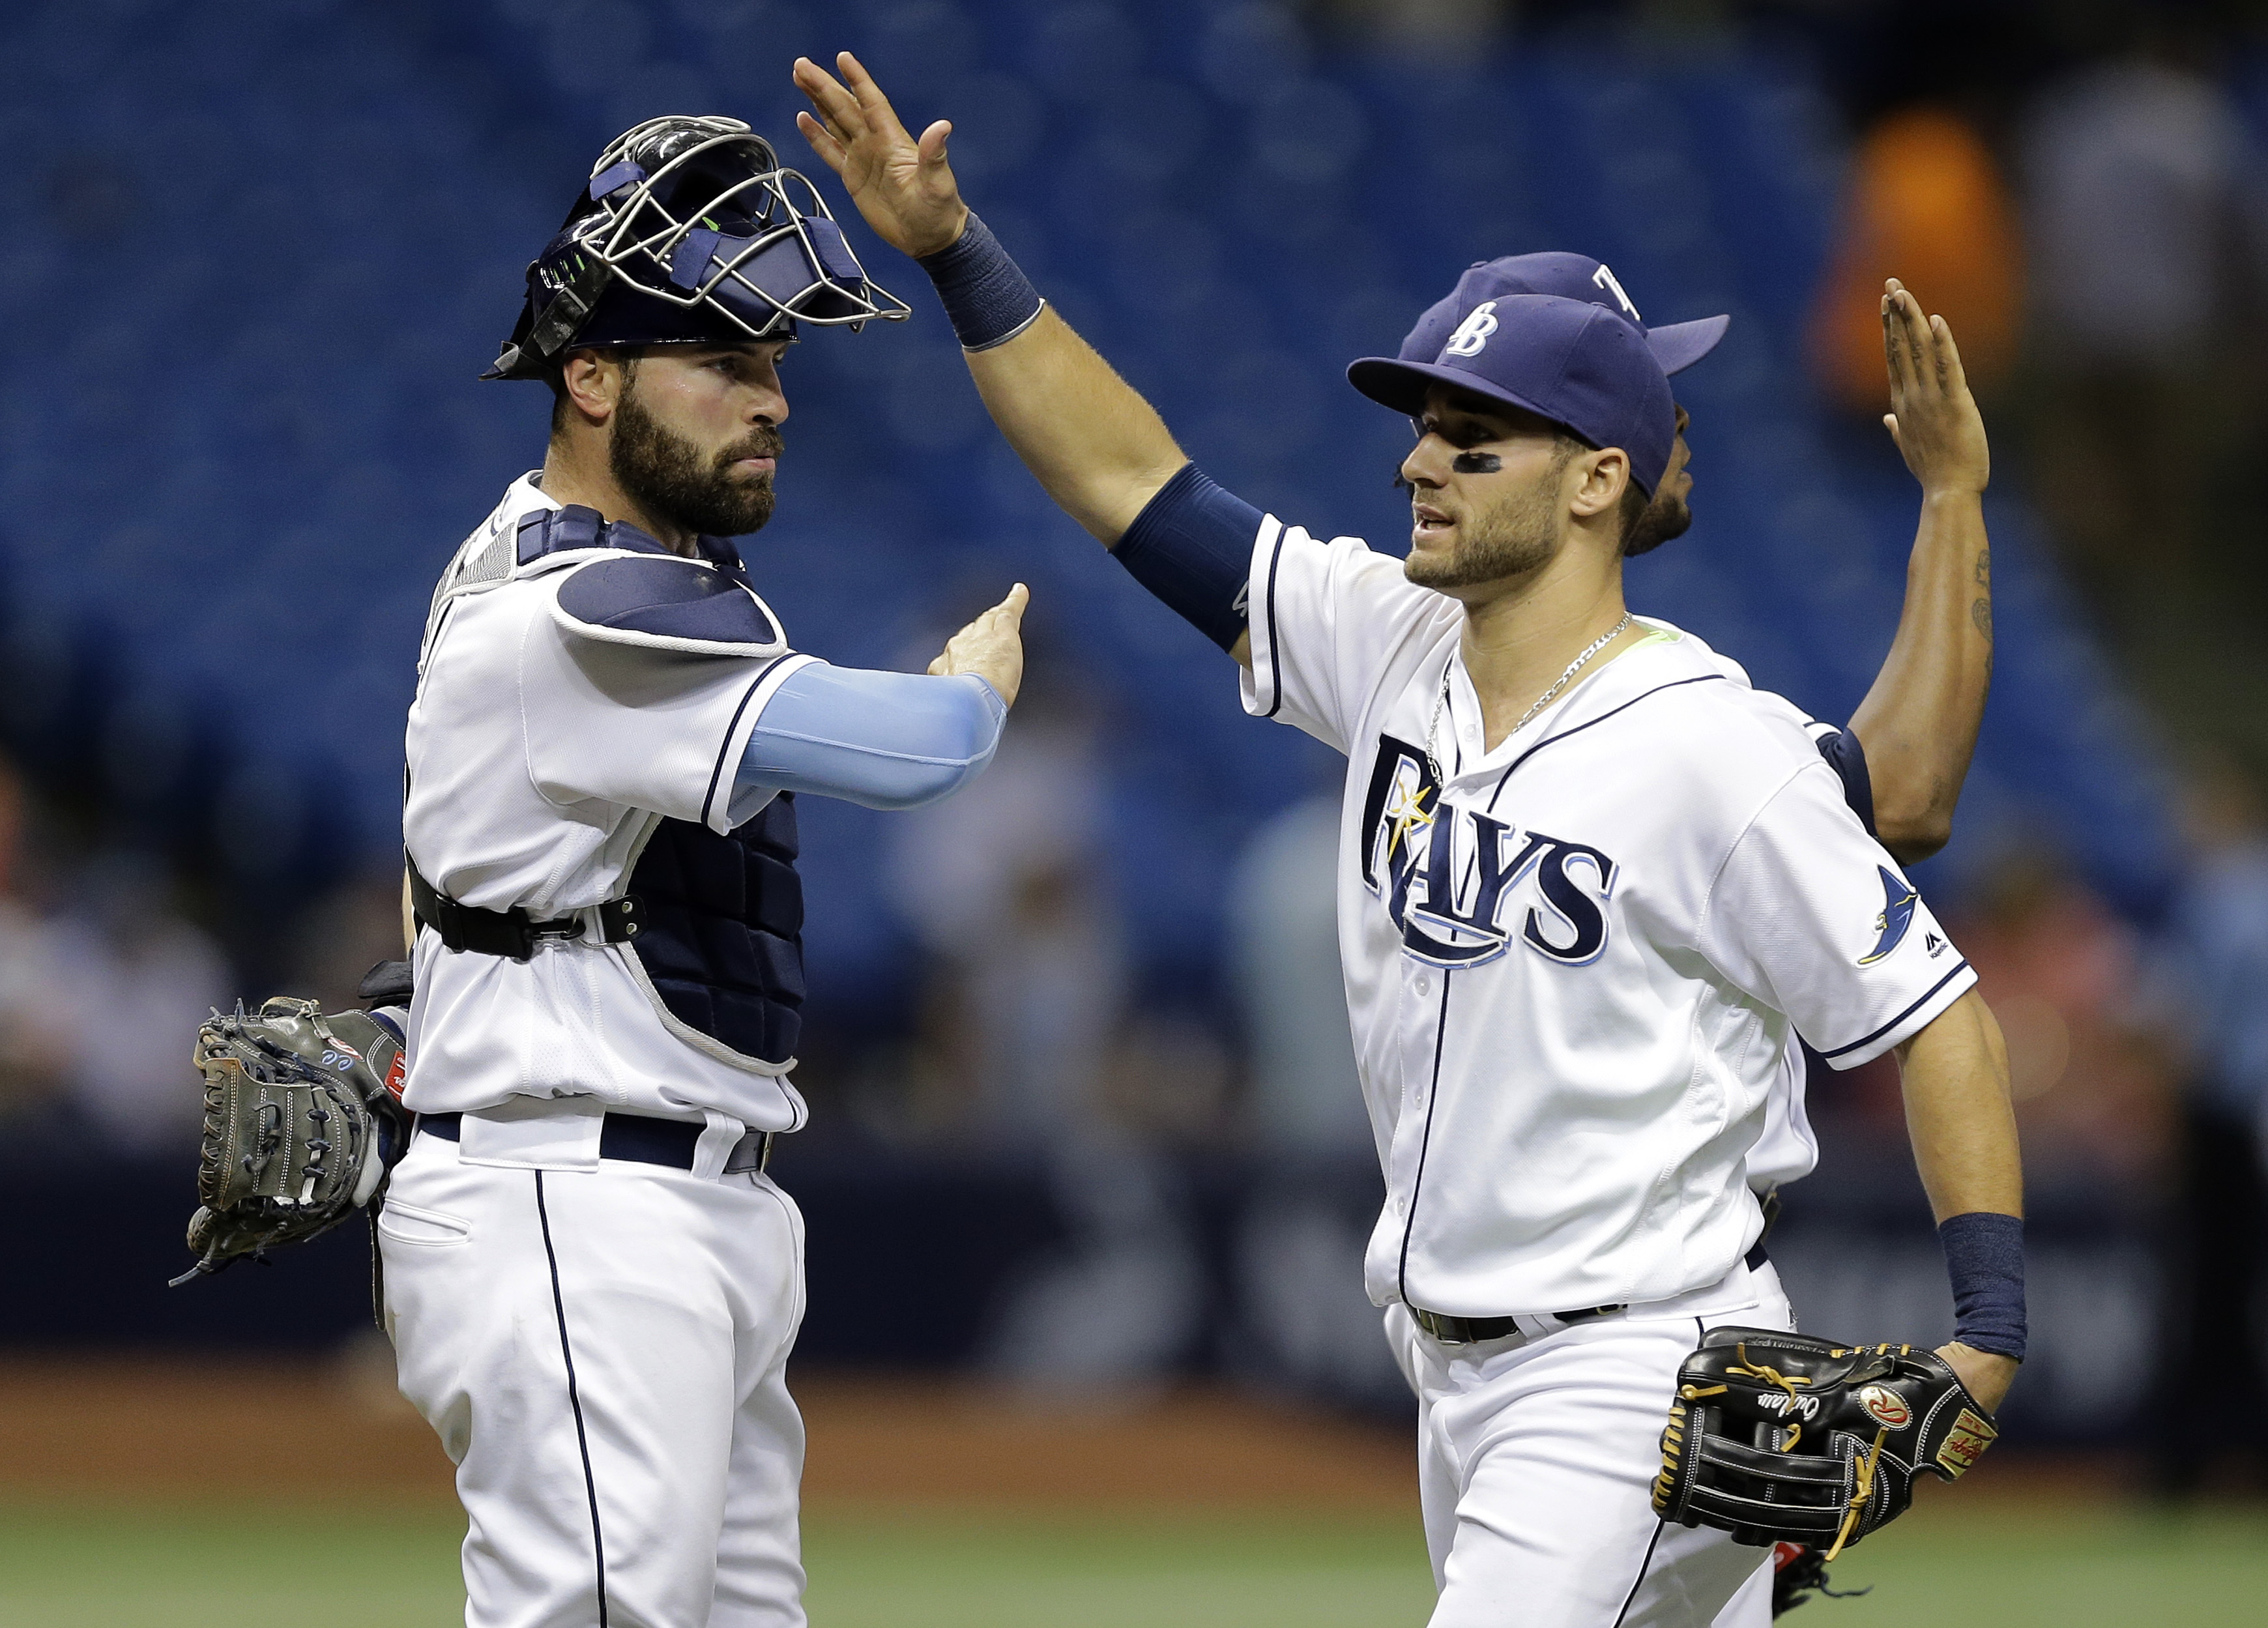 Tampa Bay Rays catcher Curt Casali, left, celebrates with center fielder Kevin Kiermaier after the Rays defeated the Baltimore Orioles 2-0 during a baseball game Monday, April 25, 2016, in St. Petersburg, Fla.  (AP Photo/Chris O'Meara)